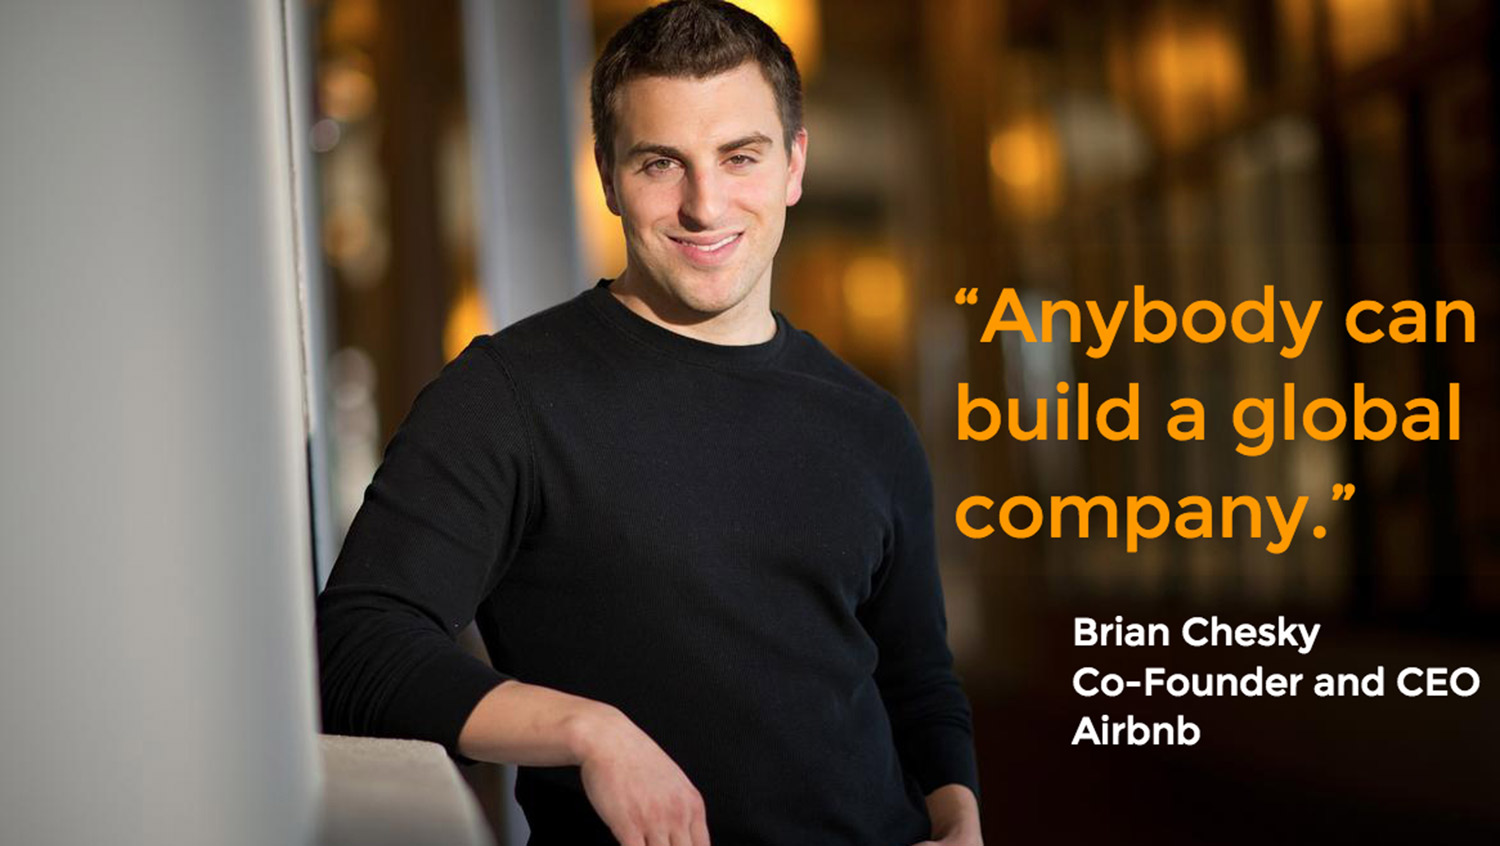 Anybody can build a global company. Brian Chesky, Co-Founder and CEO Airbnb.